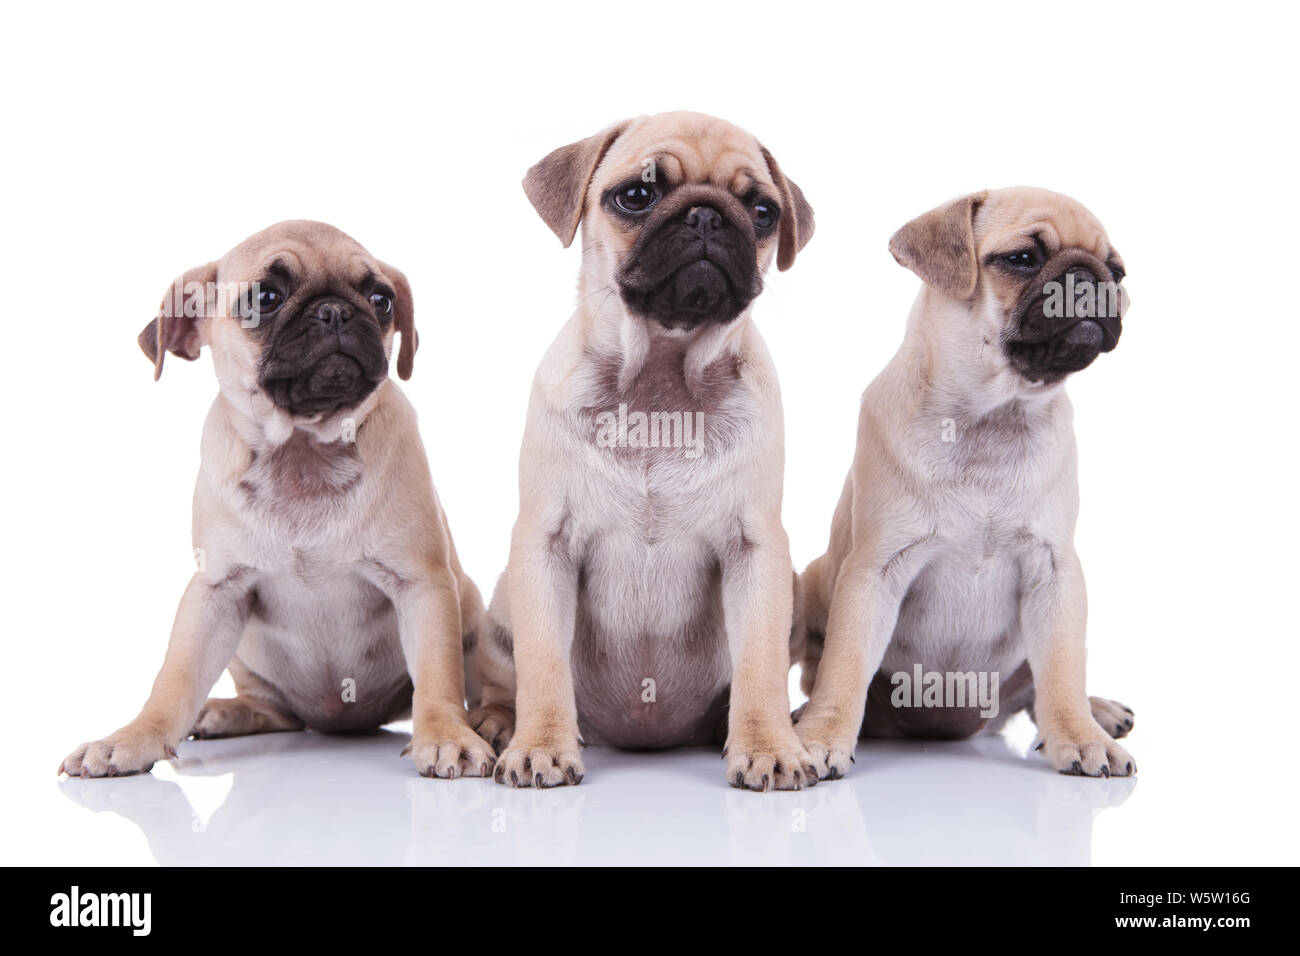 Group Of Pugs Stock Photos & Group Of Pugs Stock Images - Alamy